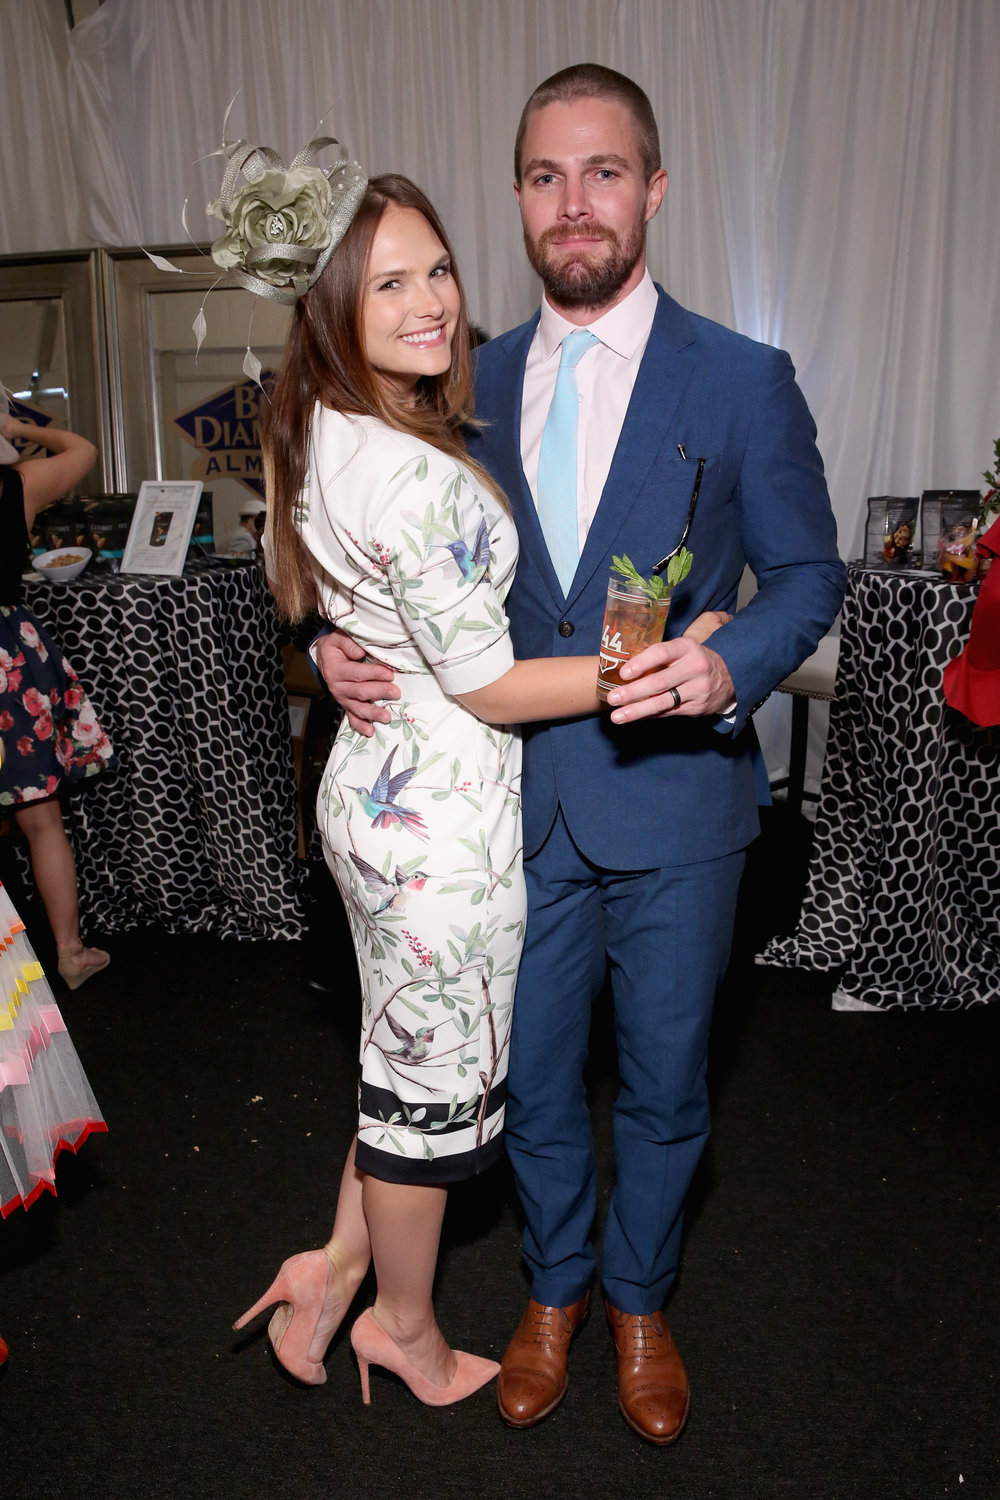 LOUISVILLE, KY - MAY 05:  Actors Cassandra Jean and Stephen Amell attend Kentucky Derby 144 on May 5, 2018 in Louisville, Kentucky.  (Photo by Robin Marchant/Getty Images for Churchill Downs) *** Local Caption *** Stephen Amell;Cassandra Jean